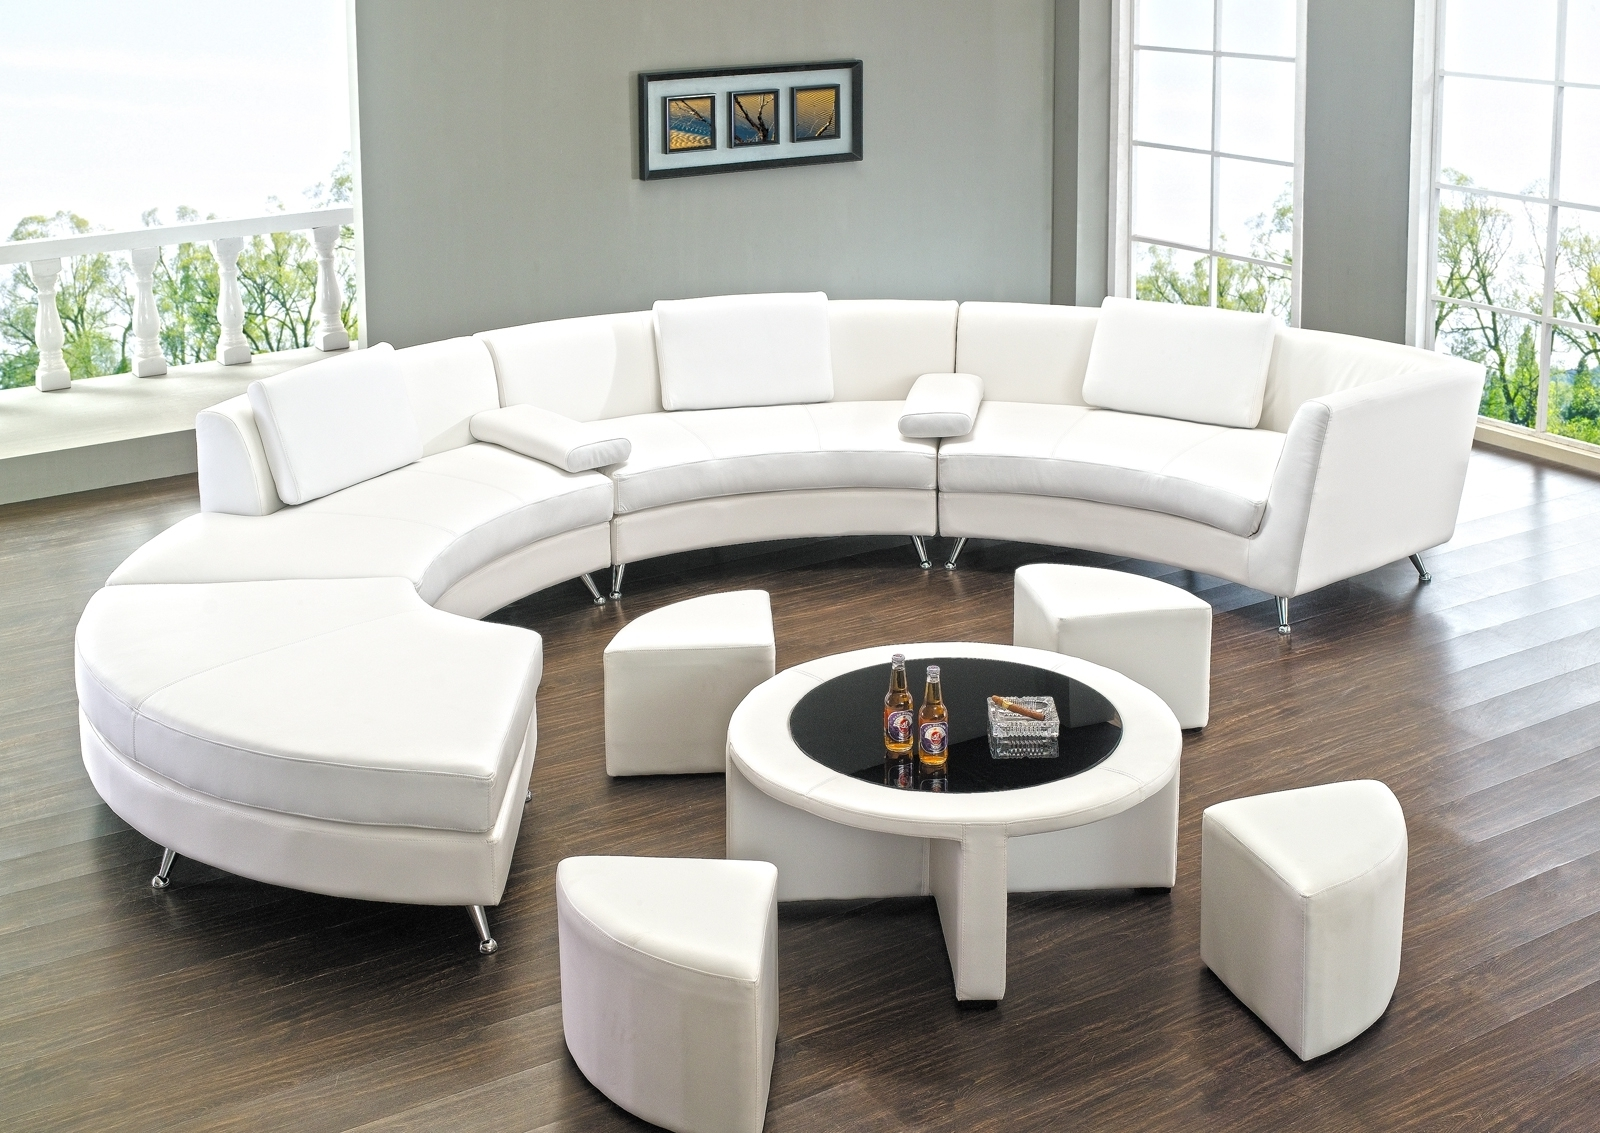 Newest Round Sectional Sofa Has One Of The Best Kind Of Other Is With Regard To Rounded Sofas (View 12 of 15)